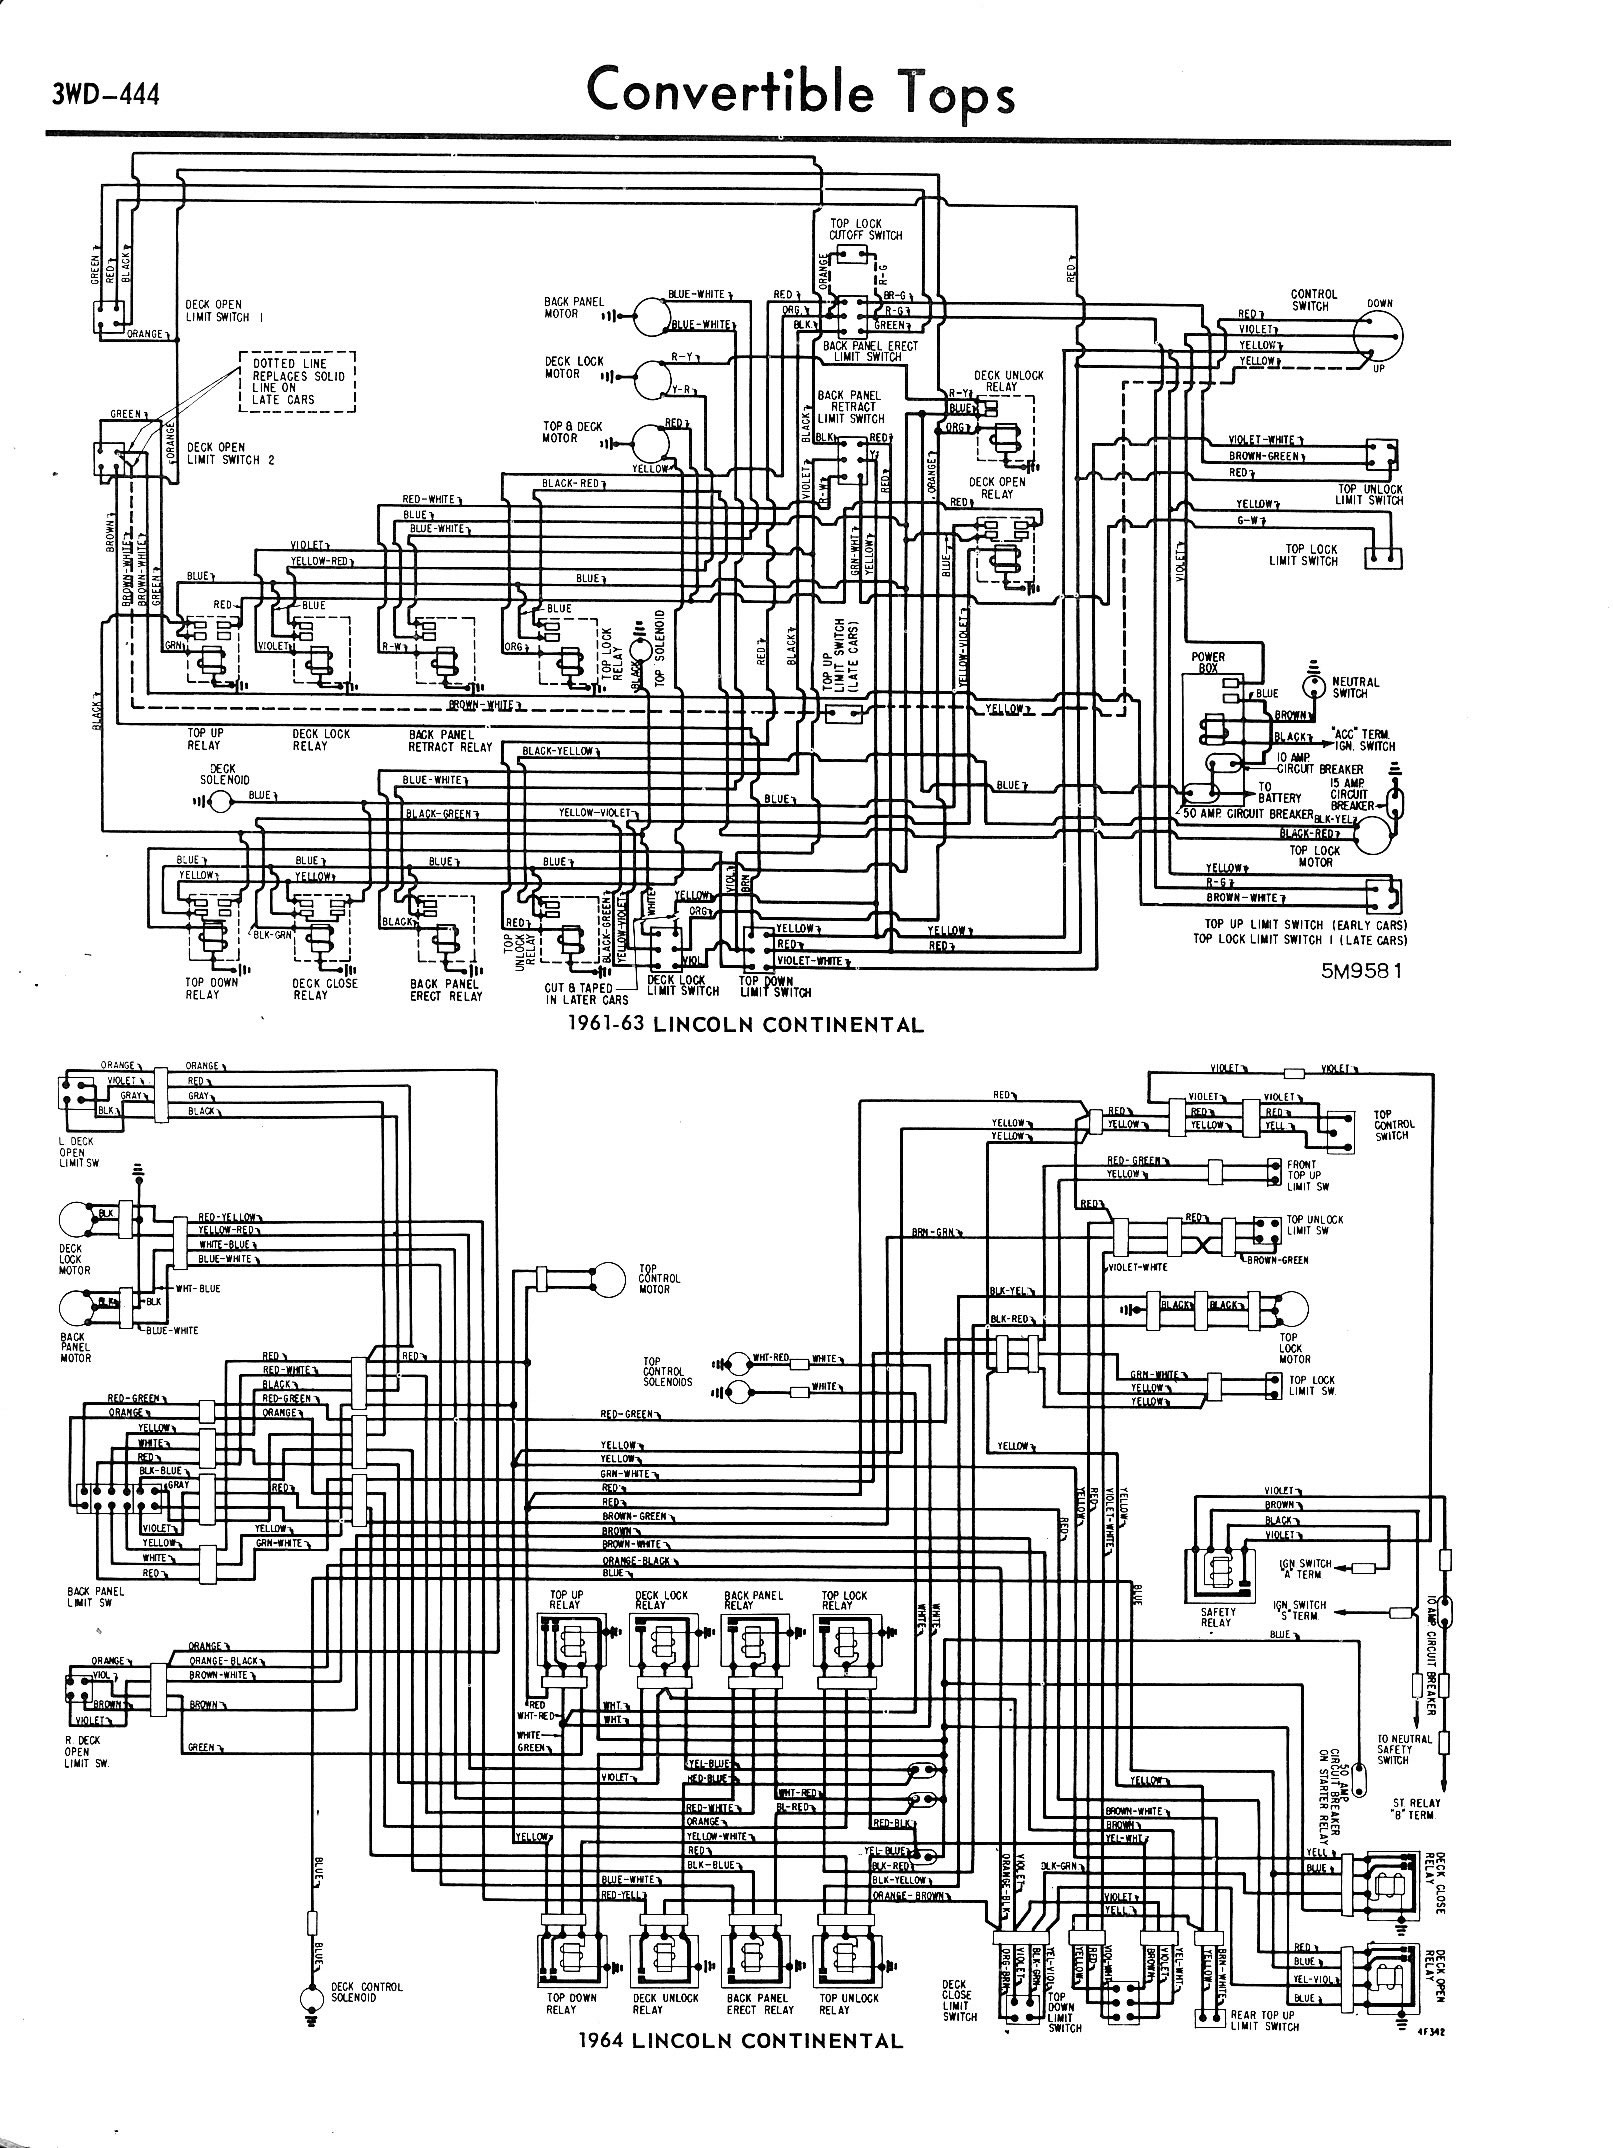 3WD 444_jpg 1961 ford falcon wiring harness ford ranger wiring harness Basic Turn Signal Wiring Diagram at edmiracle.co